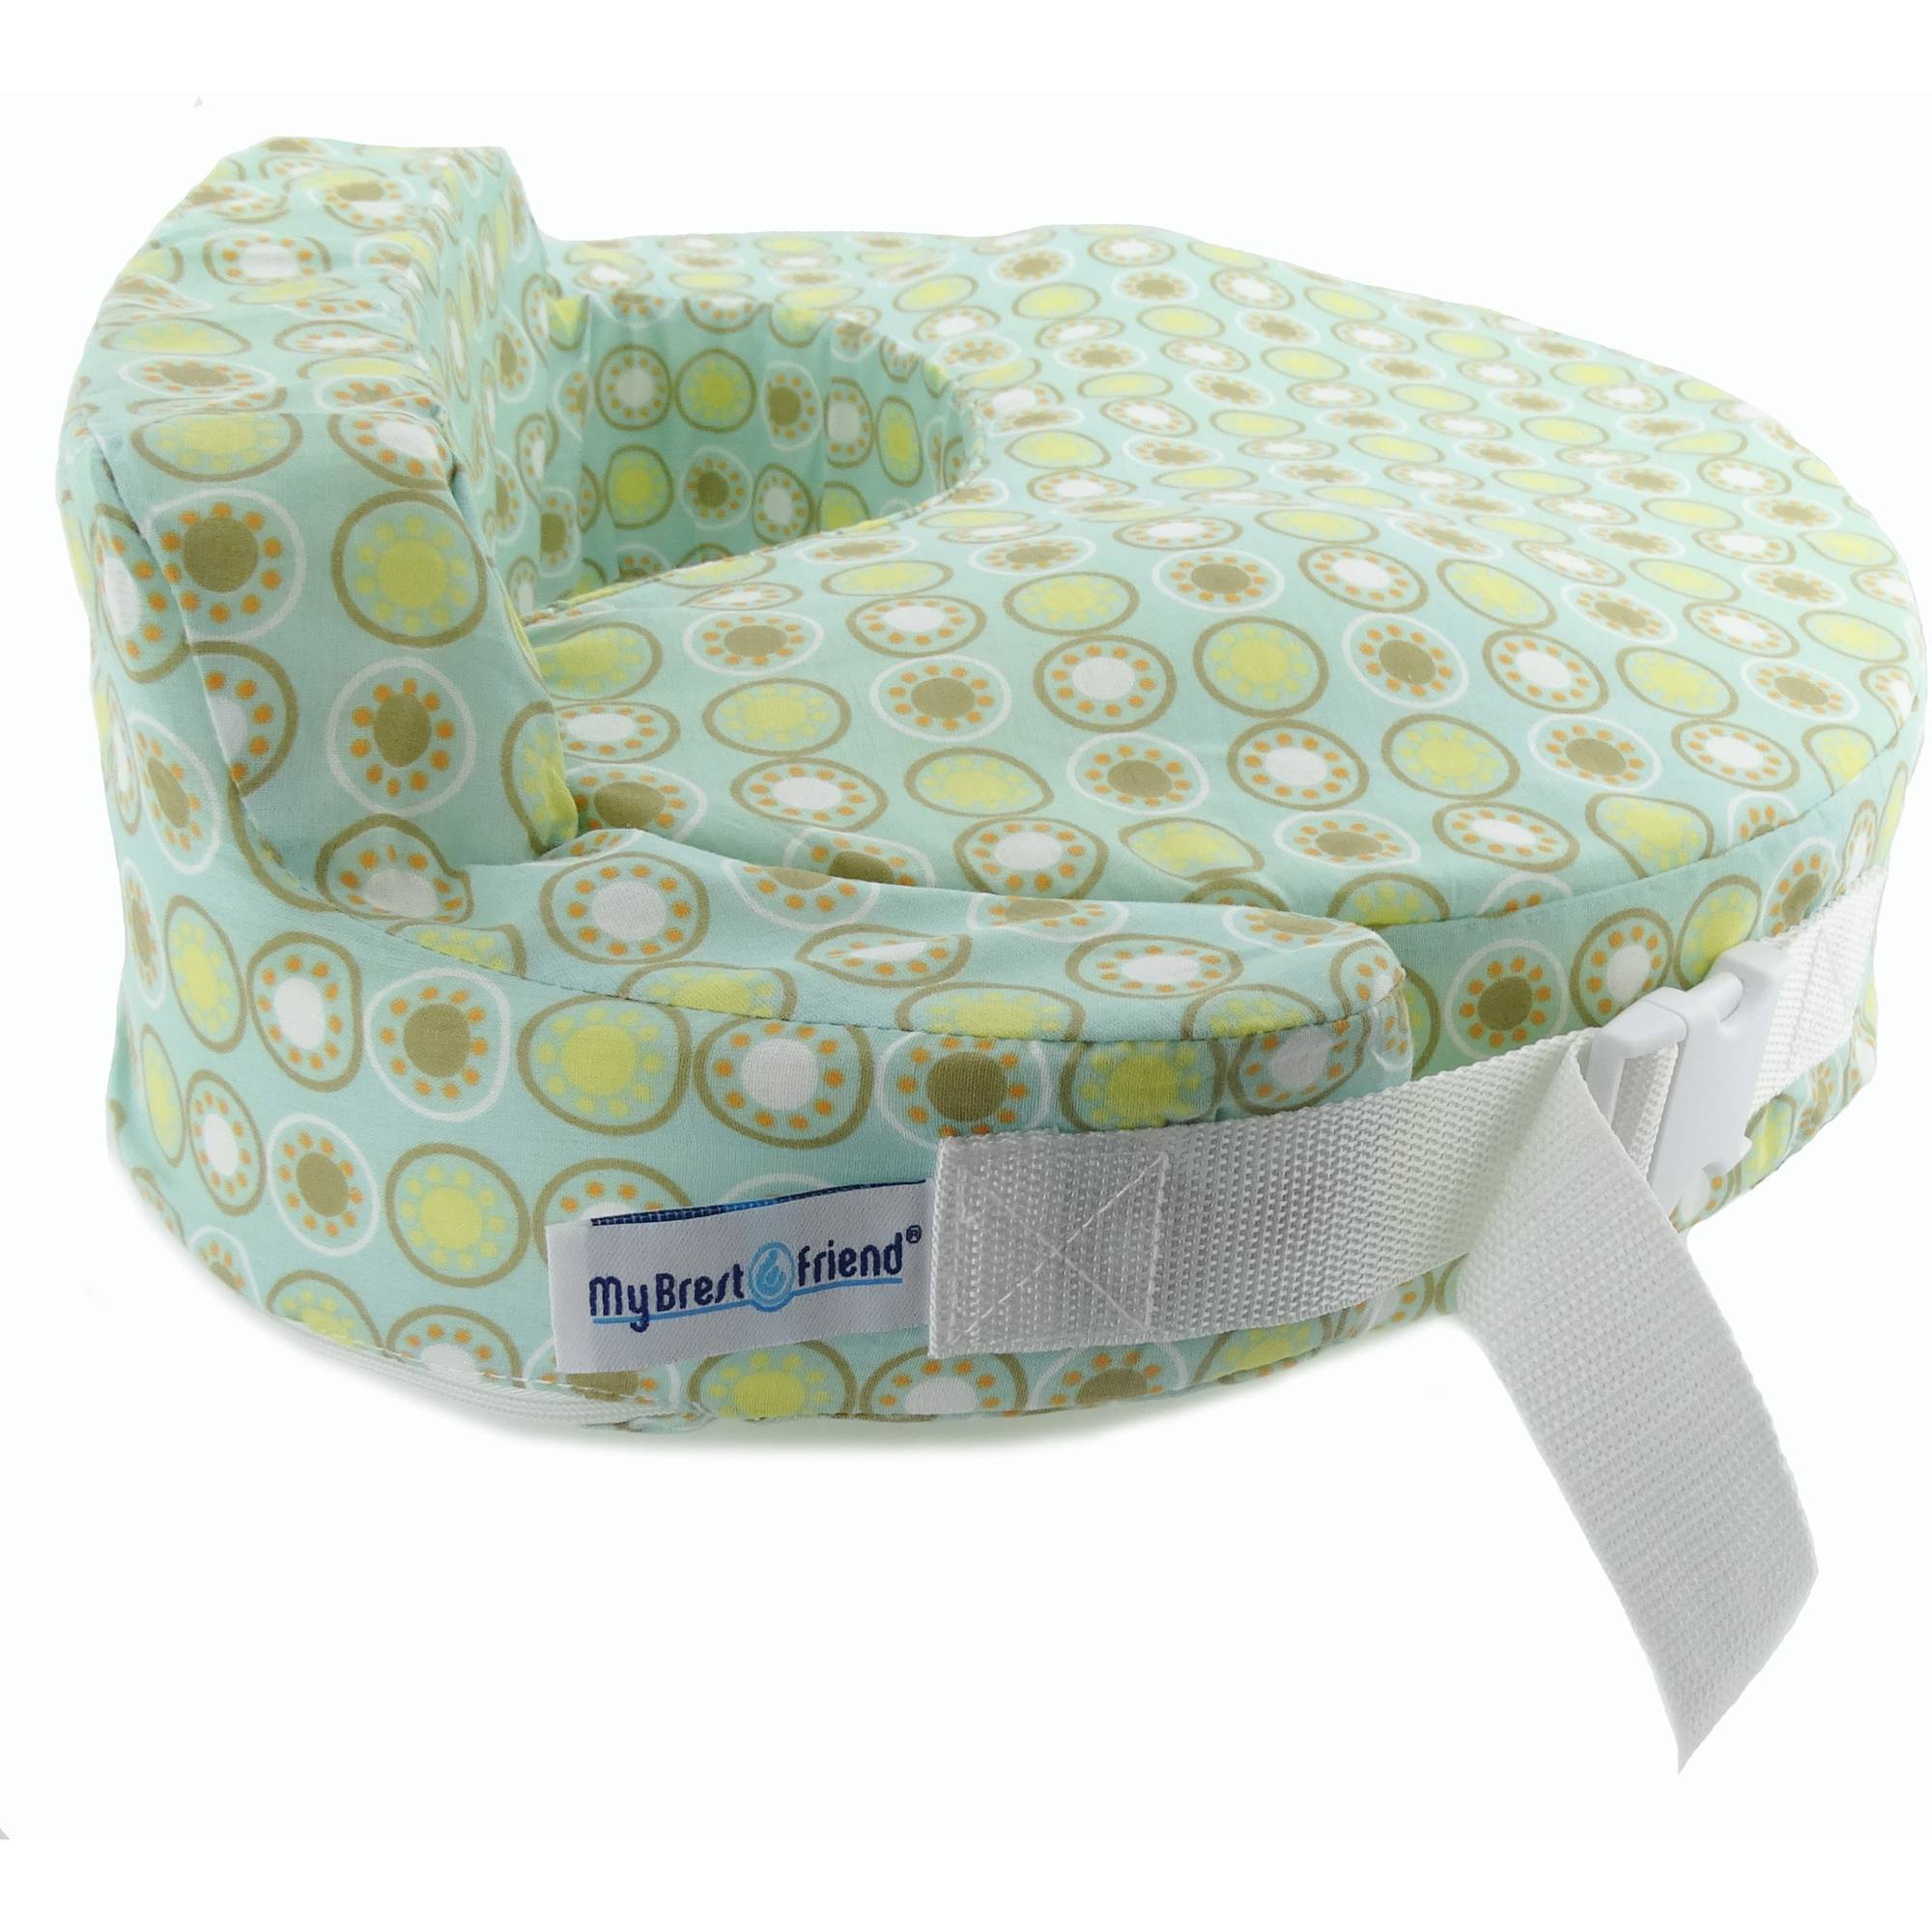 My Brest Friend - Feeding and Nursing Pillow, Bluebells - Walmart.com